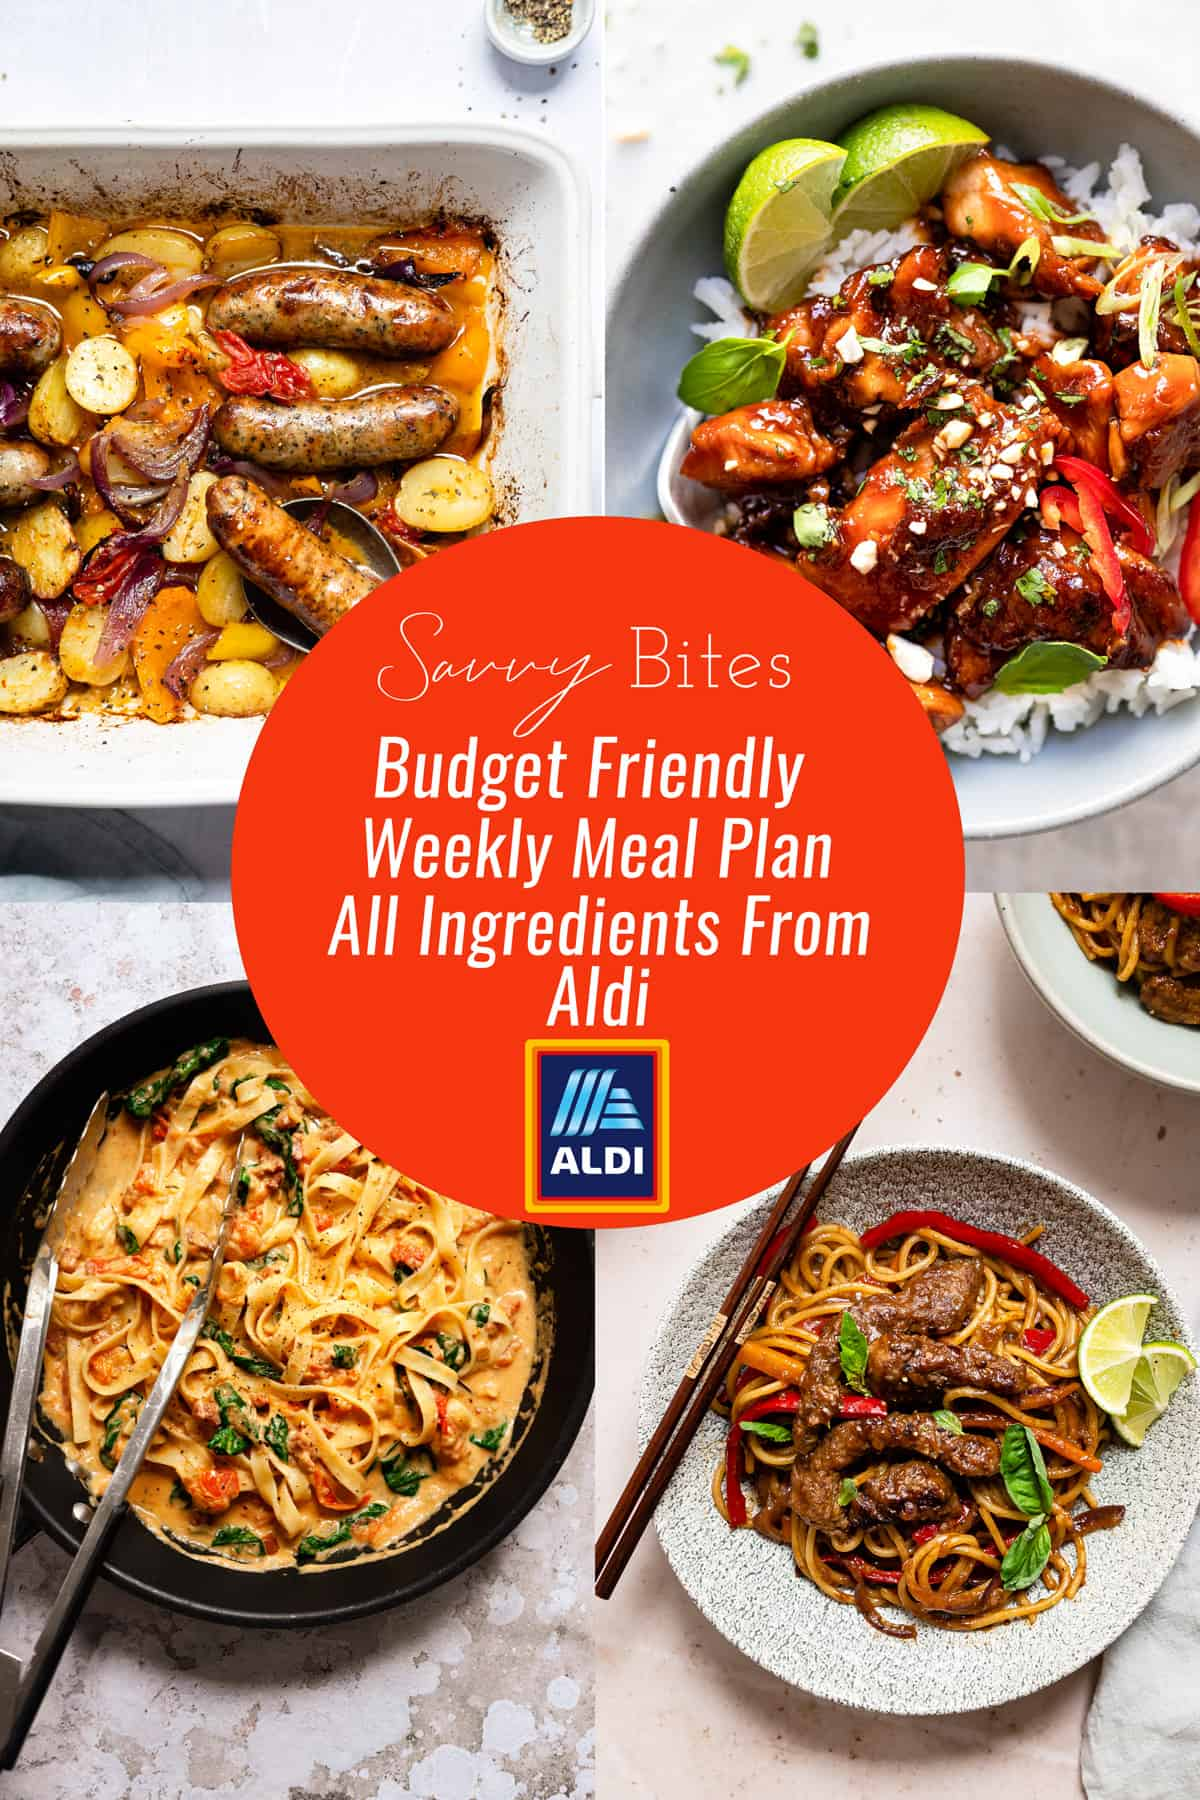 Aldi recipes meal plan with healthy recipes in a collage.